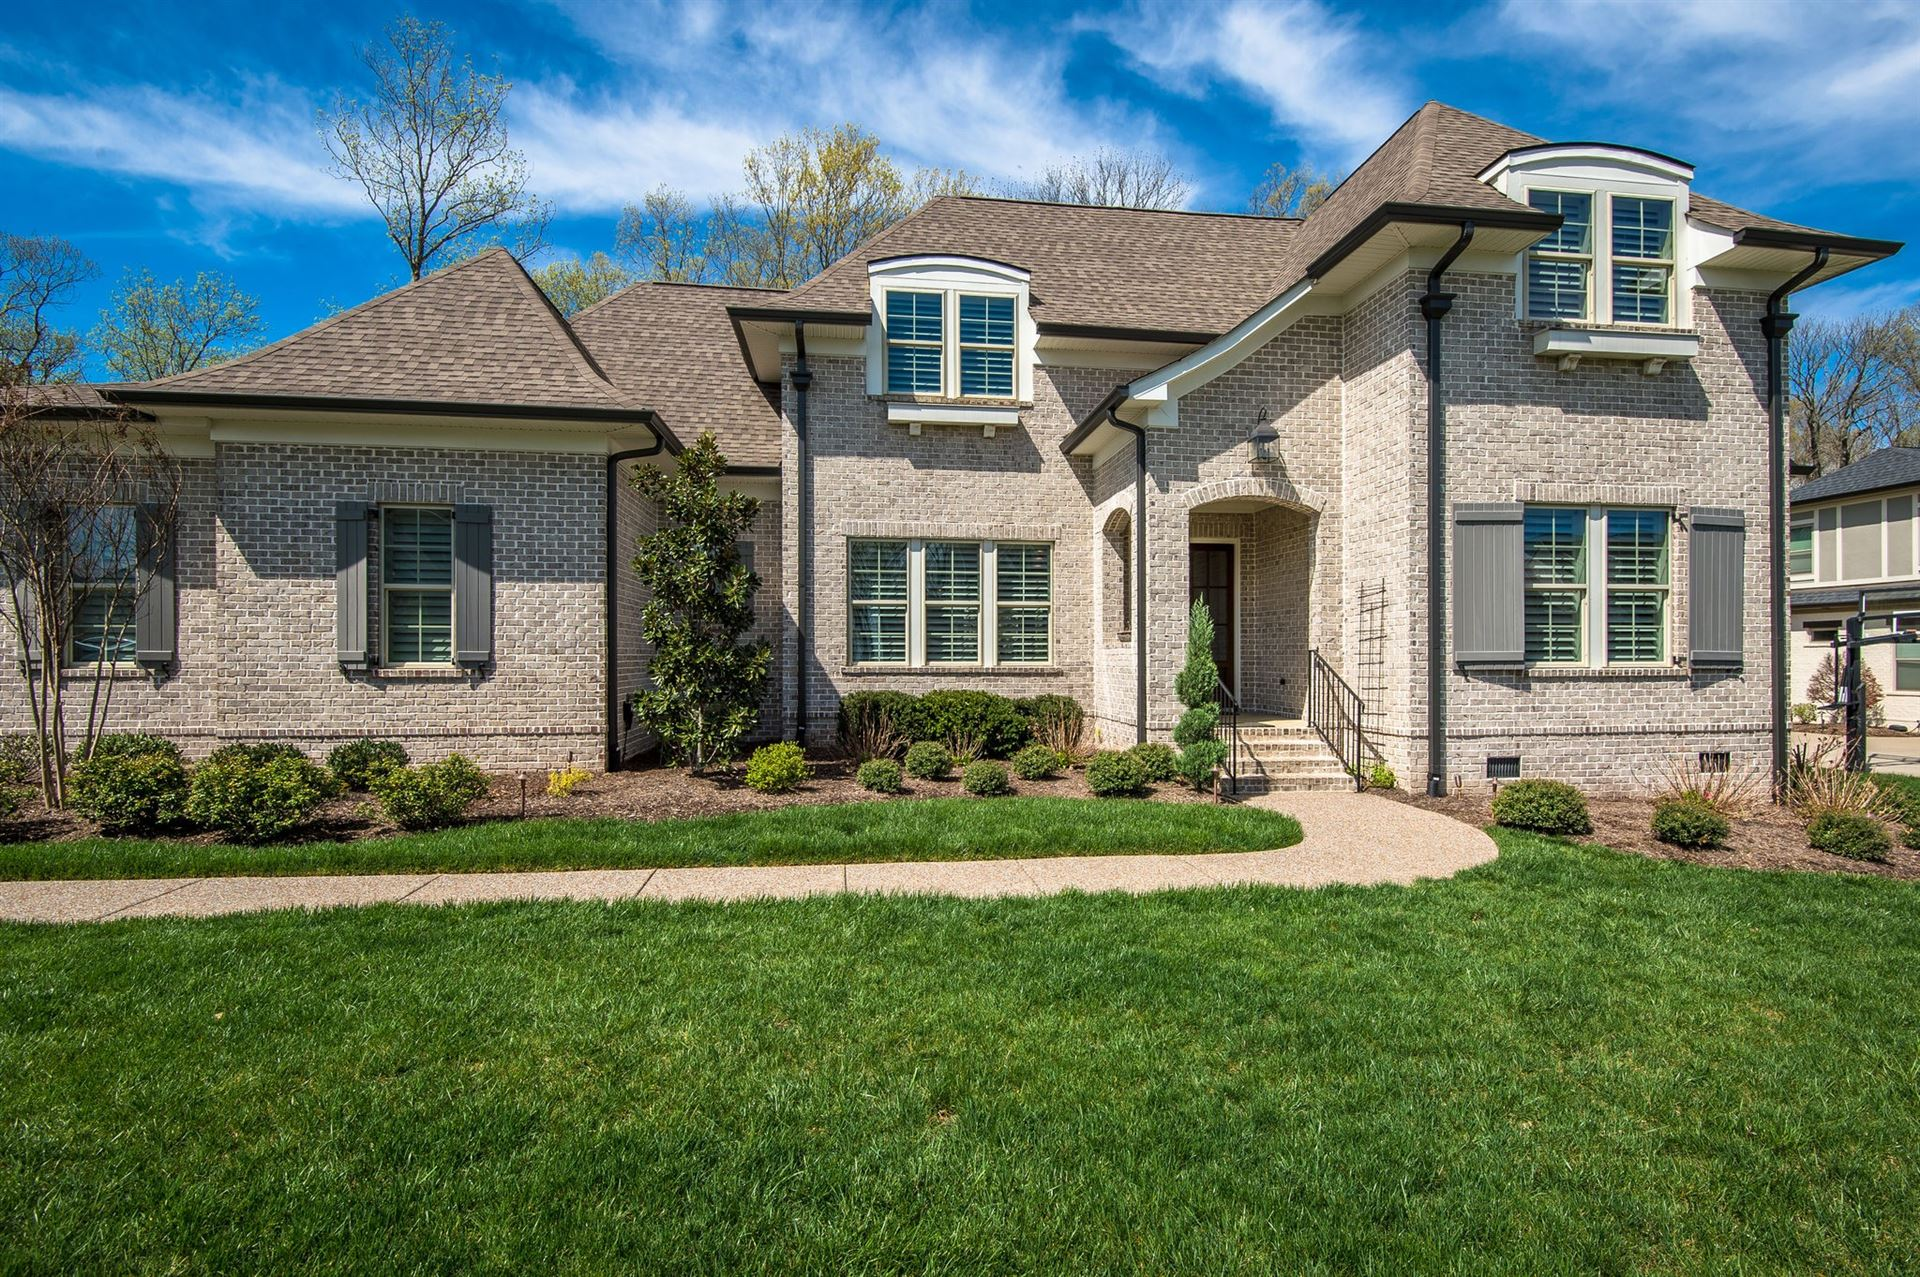 Photo of 417 Oldenburg Rd, Nolensville, TN 37135 (MLS # 2136716)